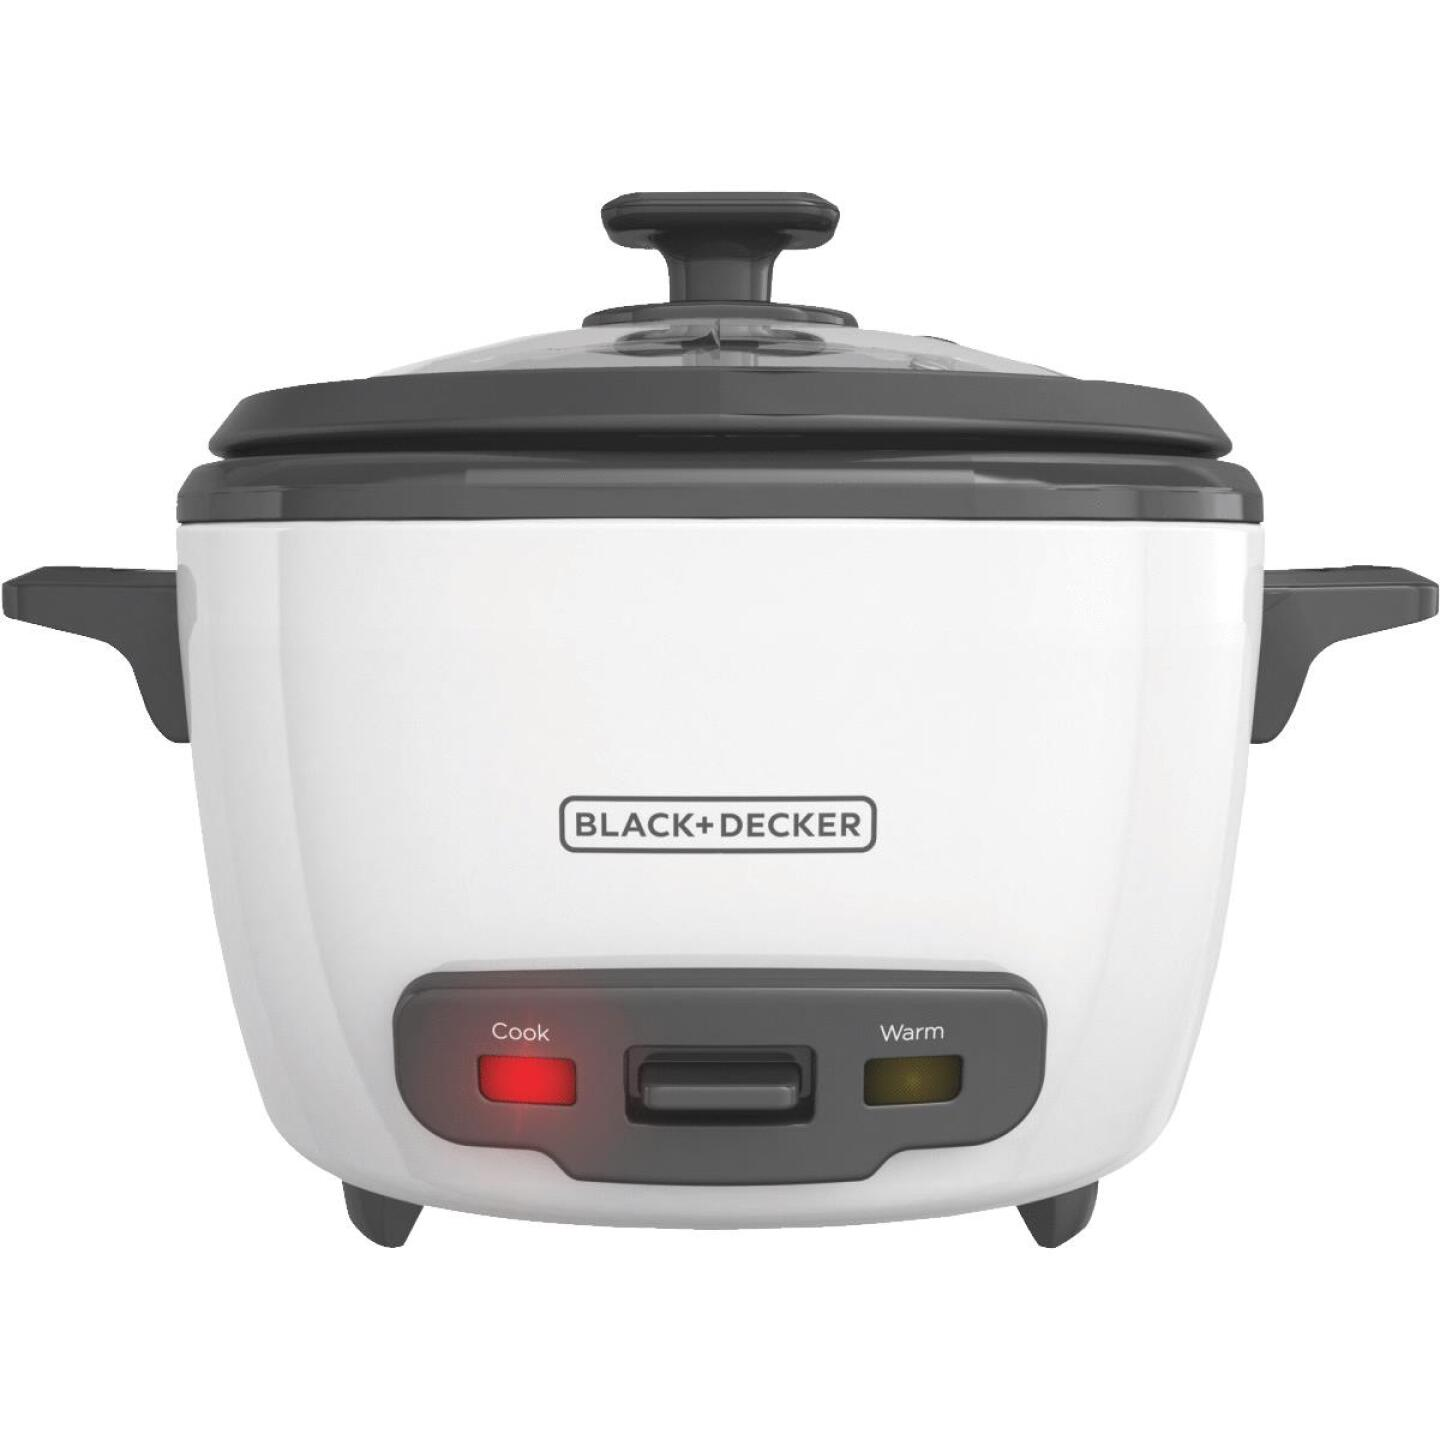 Black & Decker 16 Cup Rice Cooker Image 1